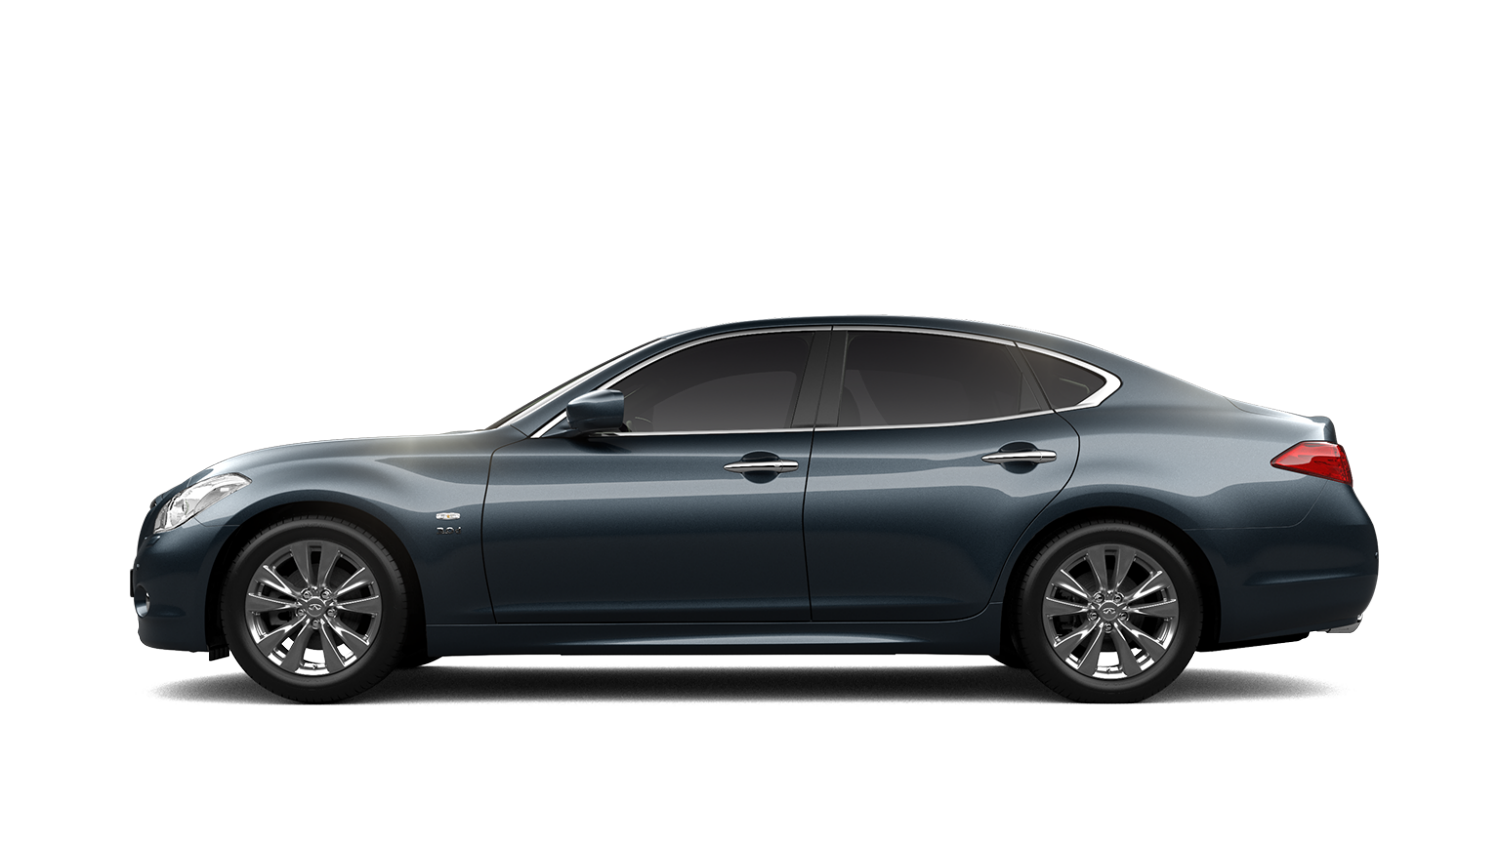 Specifications Q70 Infiniti South Africa